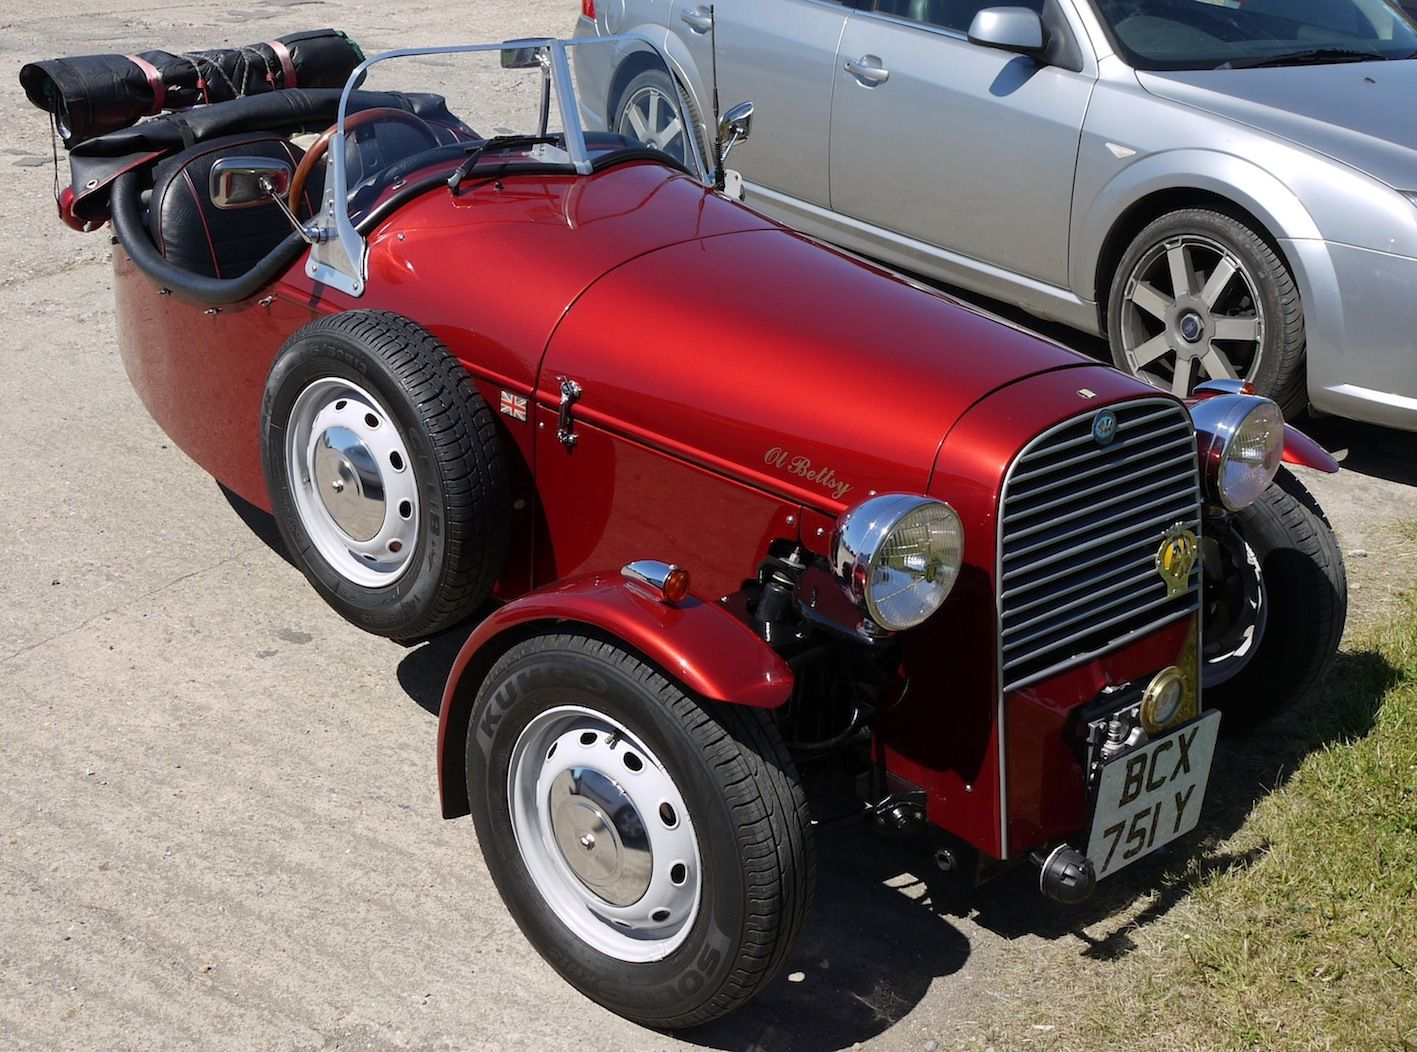 1986 Rare Drk Uk 3 Wheel Kit Car This One With A Renault 1100cc 4 Cylinder Engine Only 59 Units Were Ever Built